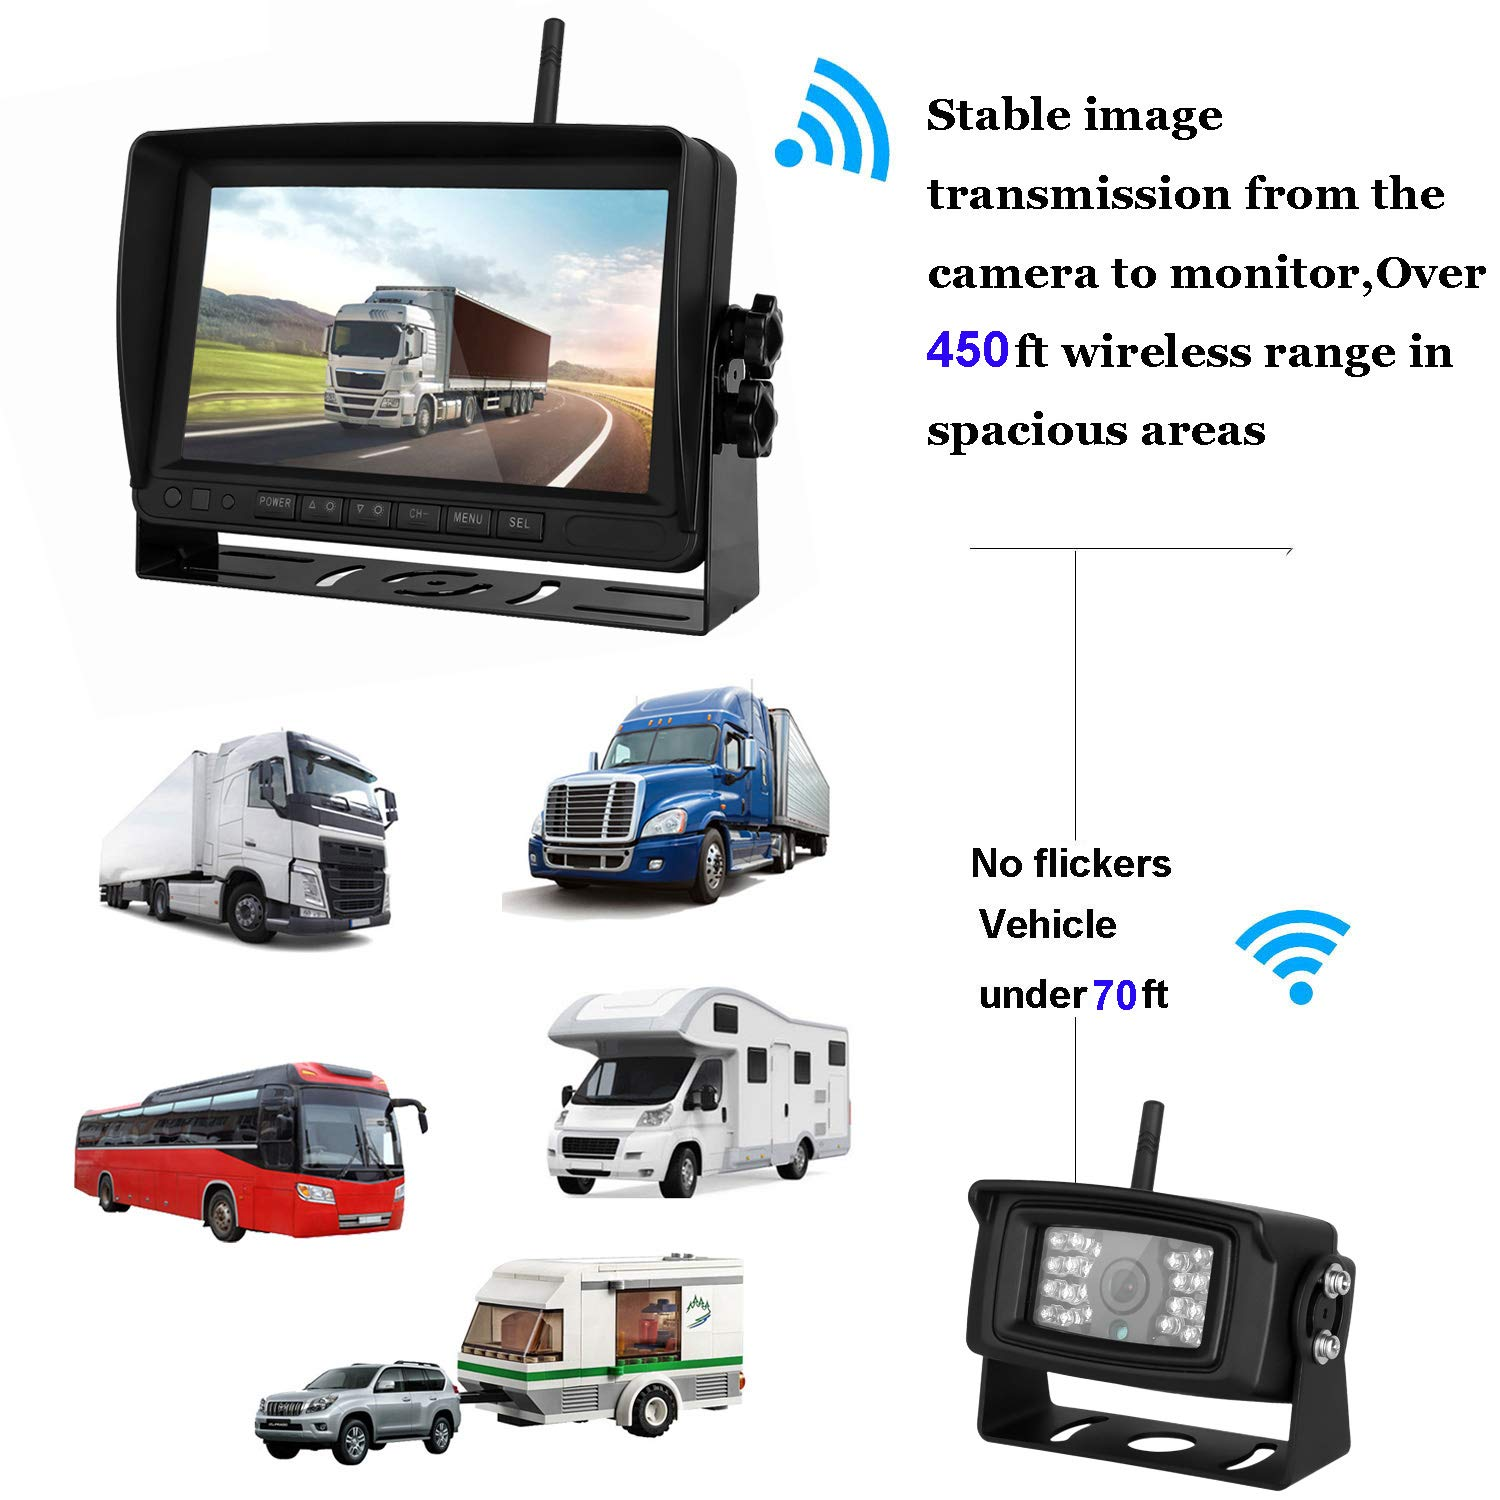 Digital Wireless Backup Camera for RV Truck Trailers Camper Caravan 5th Wheel with 7 HD Monitor System Range 450ft No Flickers Rear//Side//Facing View Continuous//Reverse Use Optional IP69K Waterproof DohonesBest